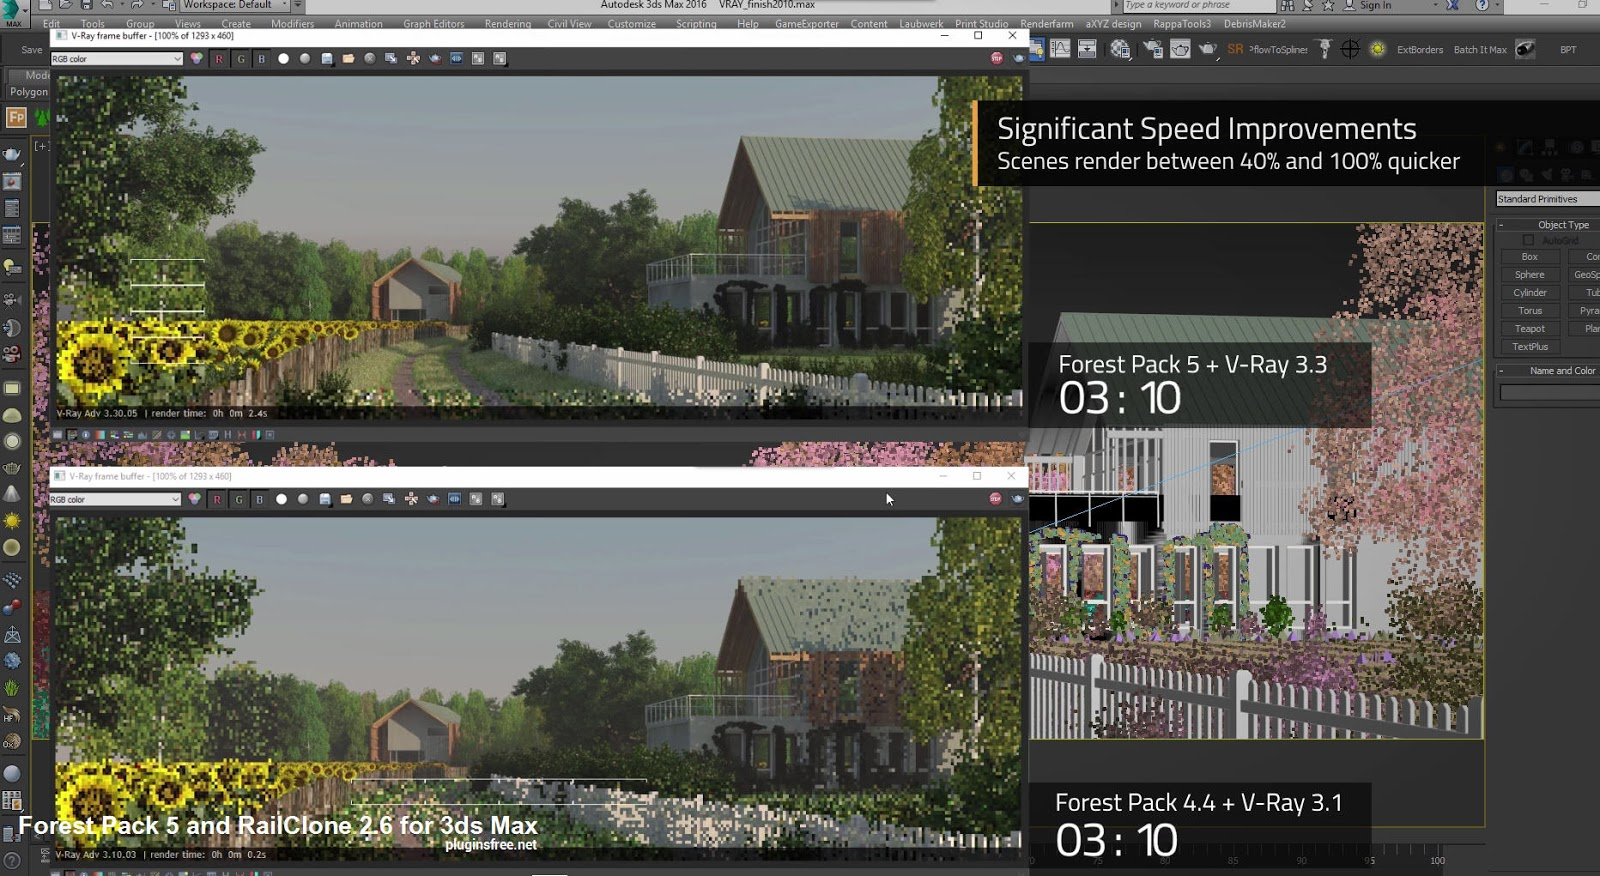 V-ray hdri lighting for exterior render in 3ds max.